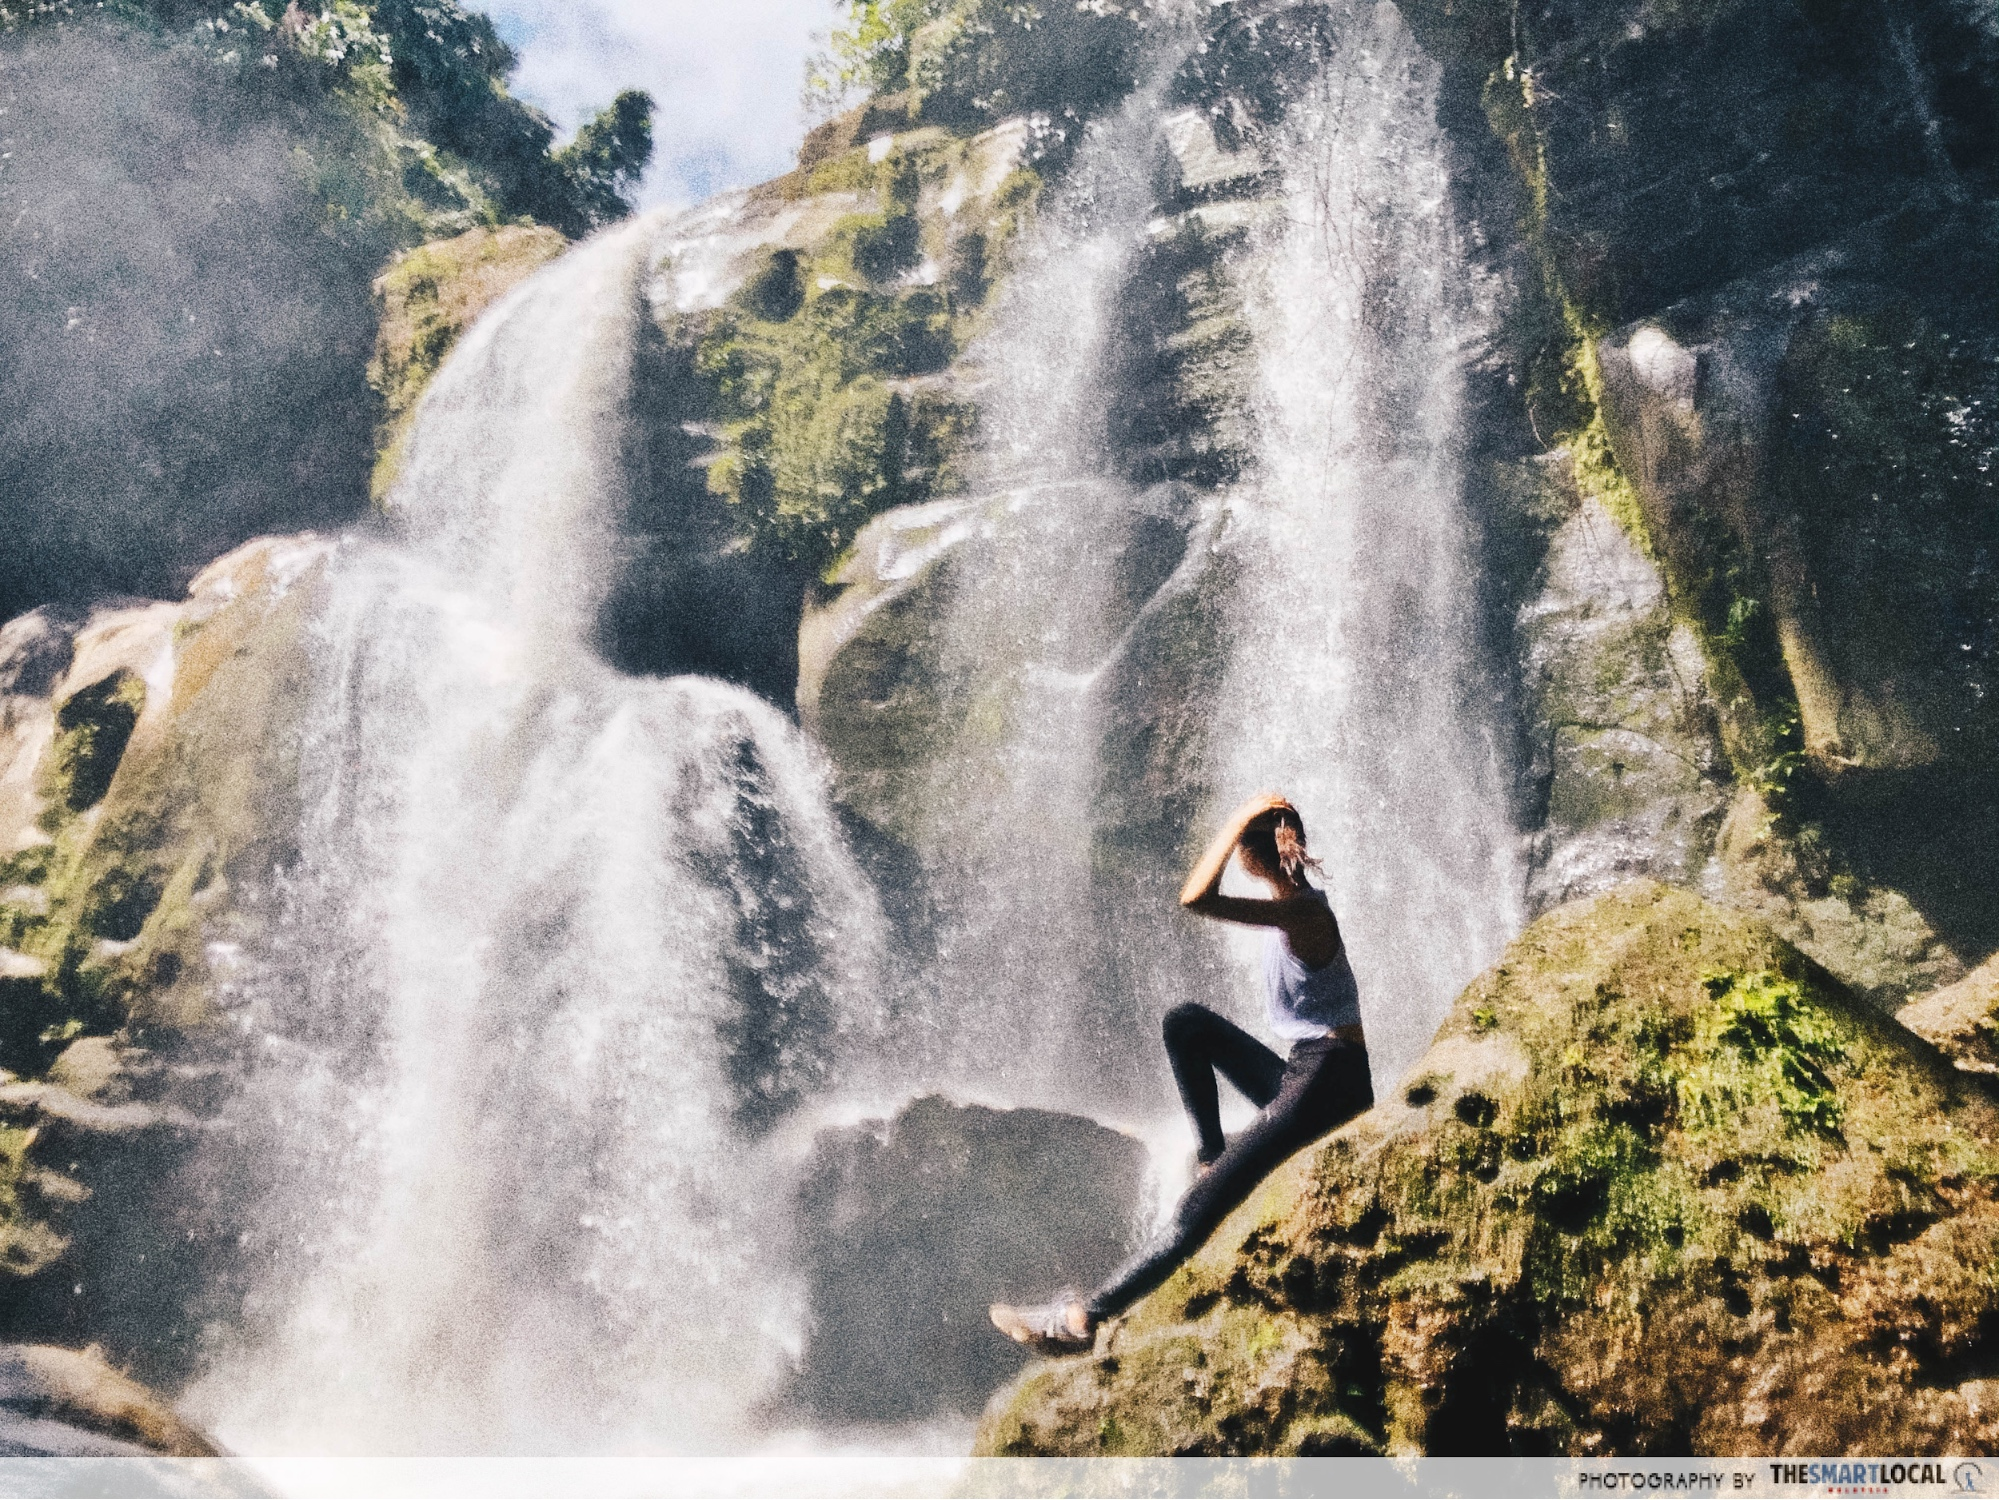 author posing in front of a waterfall